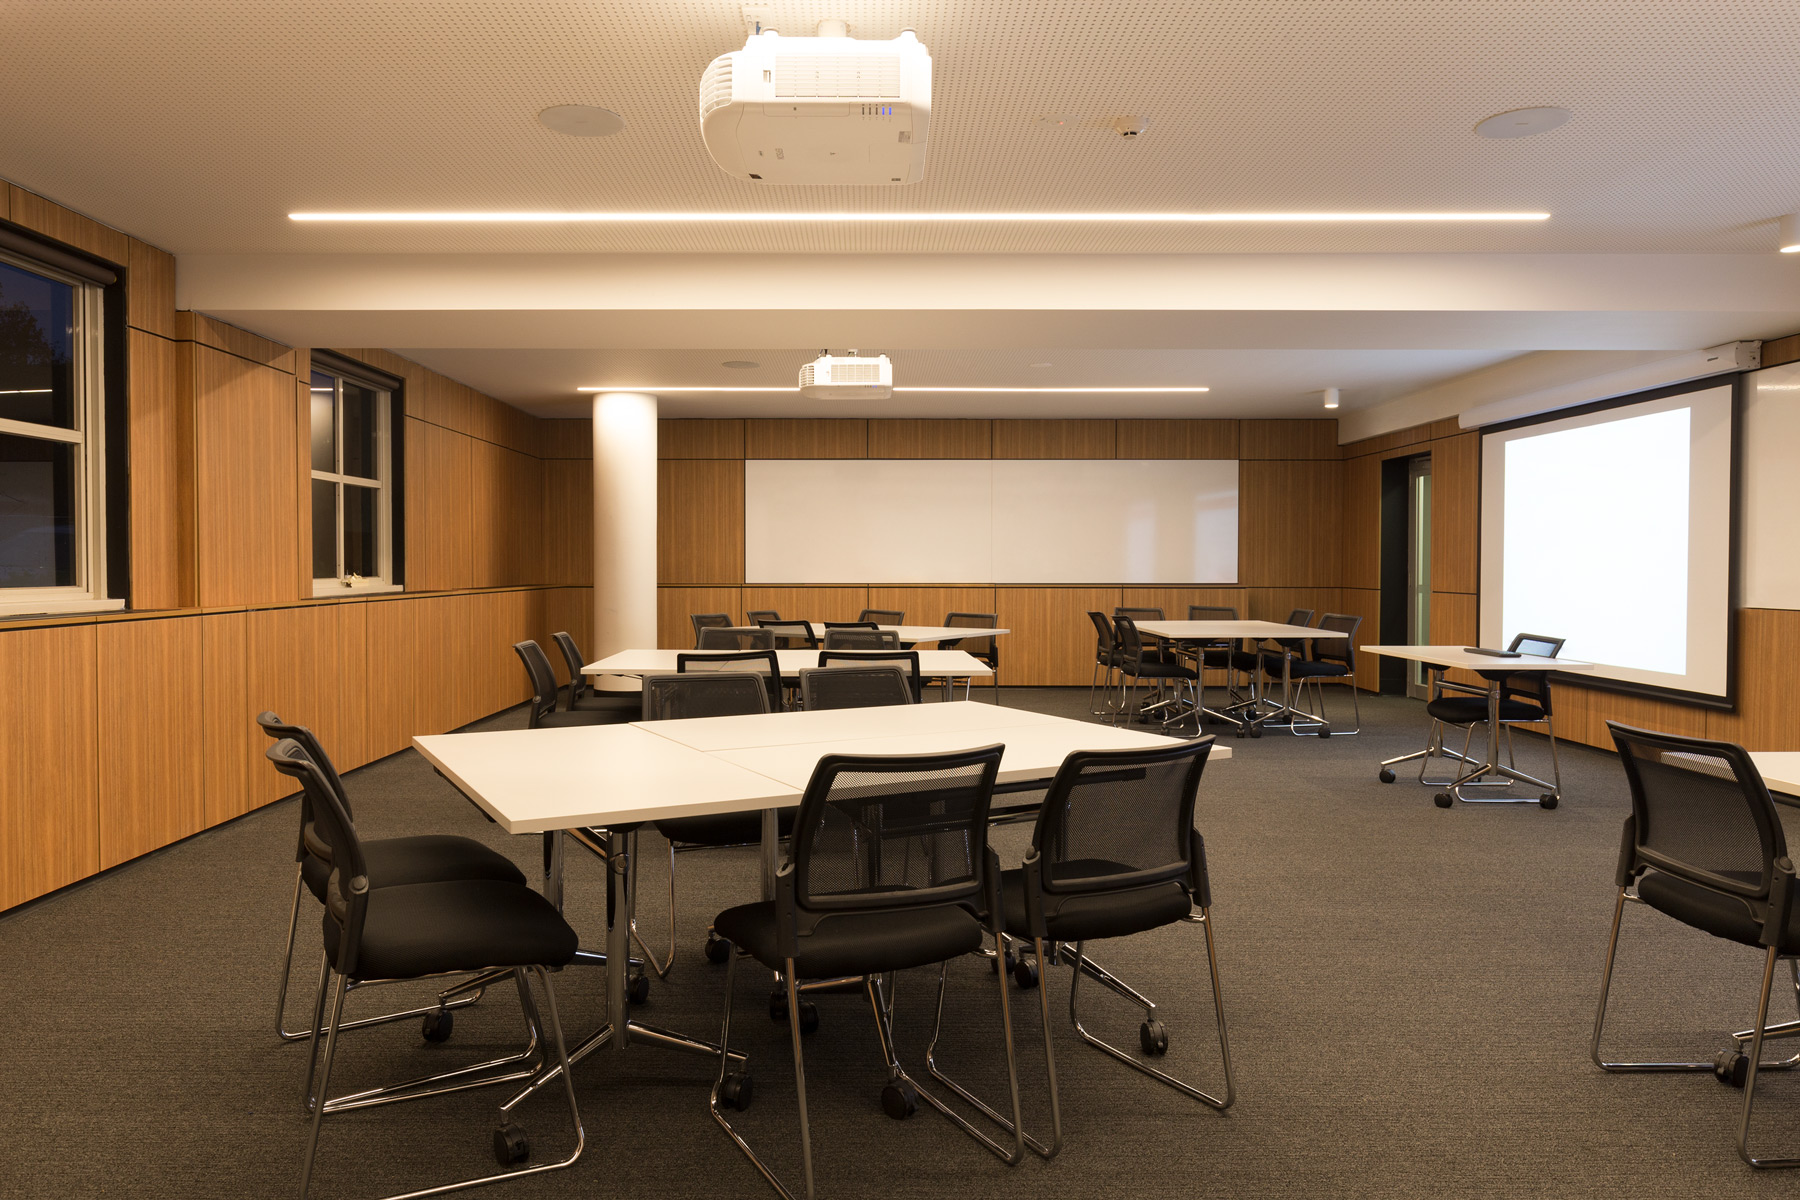 Melbourne Business School, VIC | Lighting supplied by Richmond Lighting